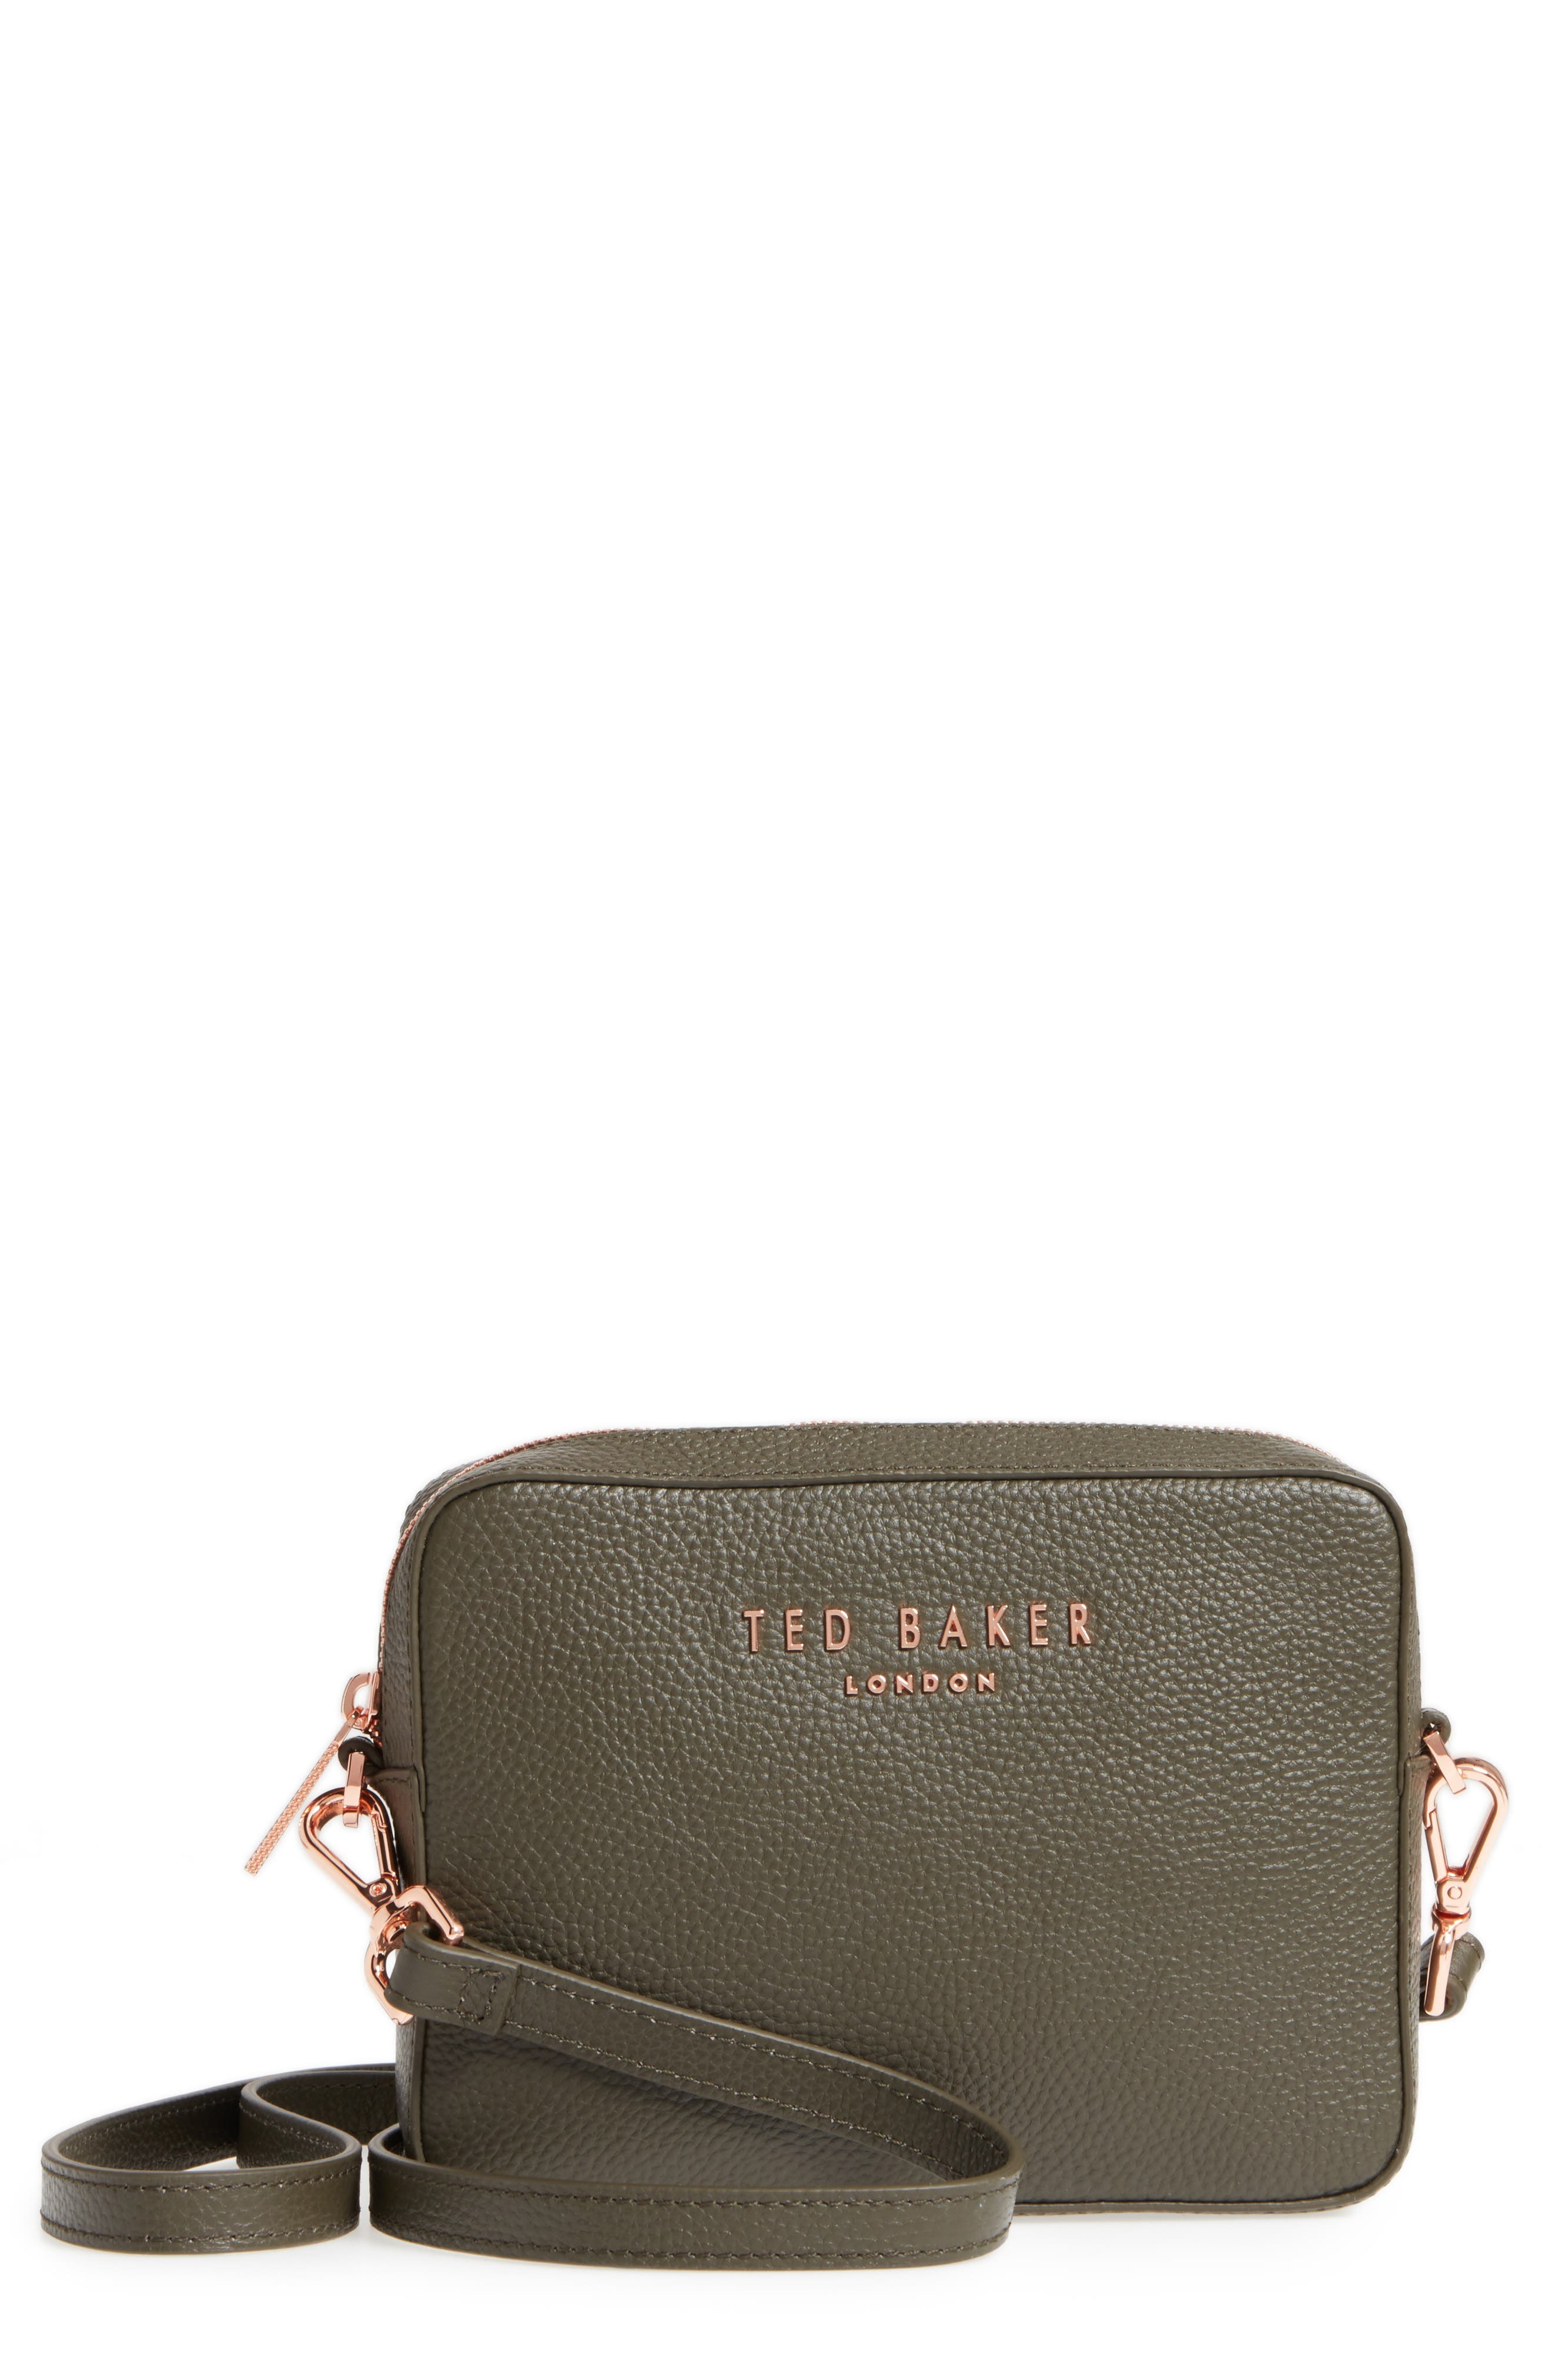 Ted Baker London Susi Leather Crossbody Bag